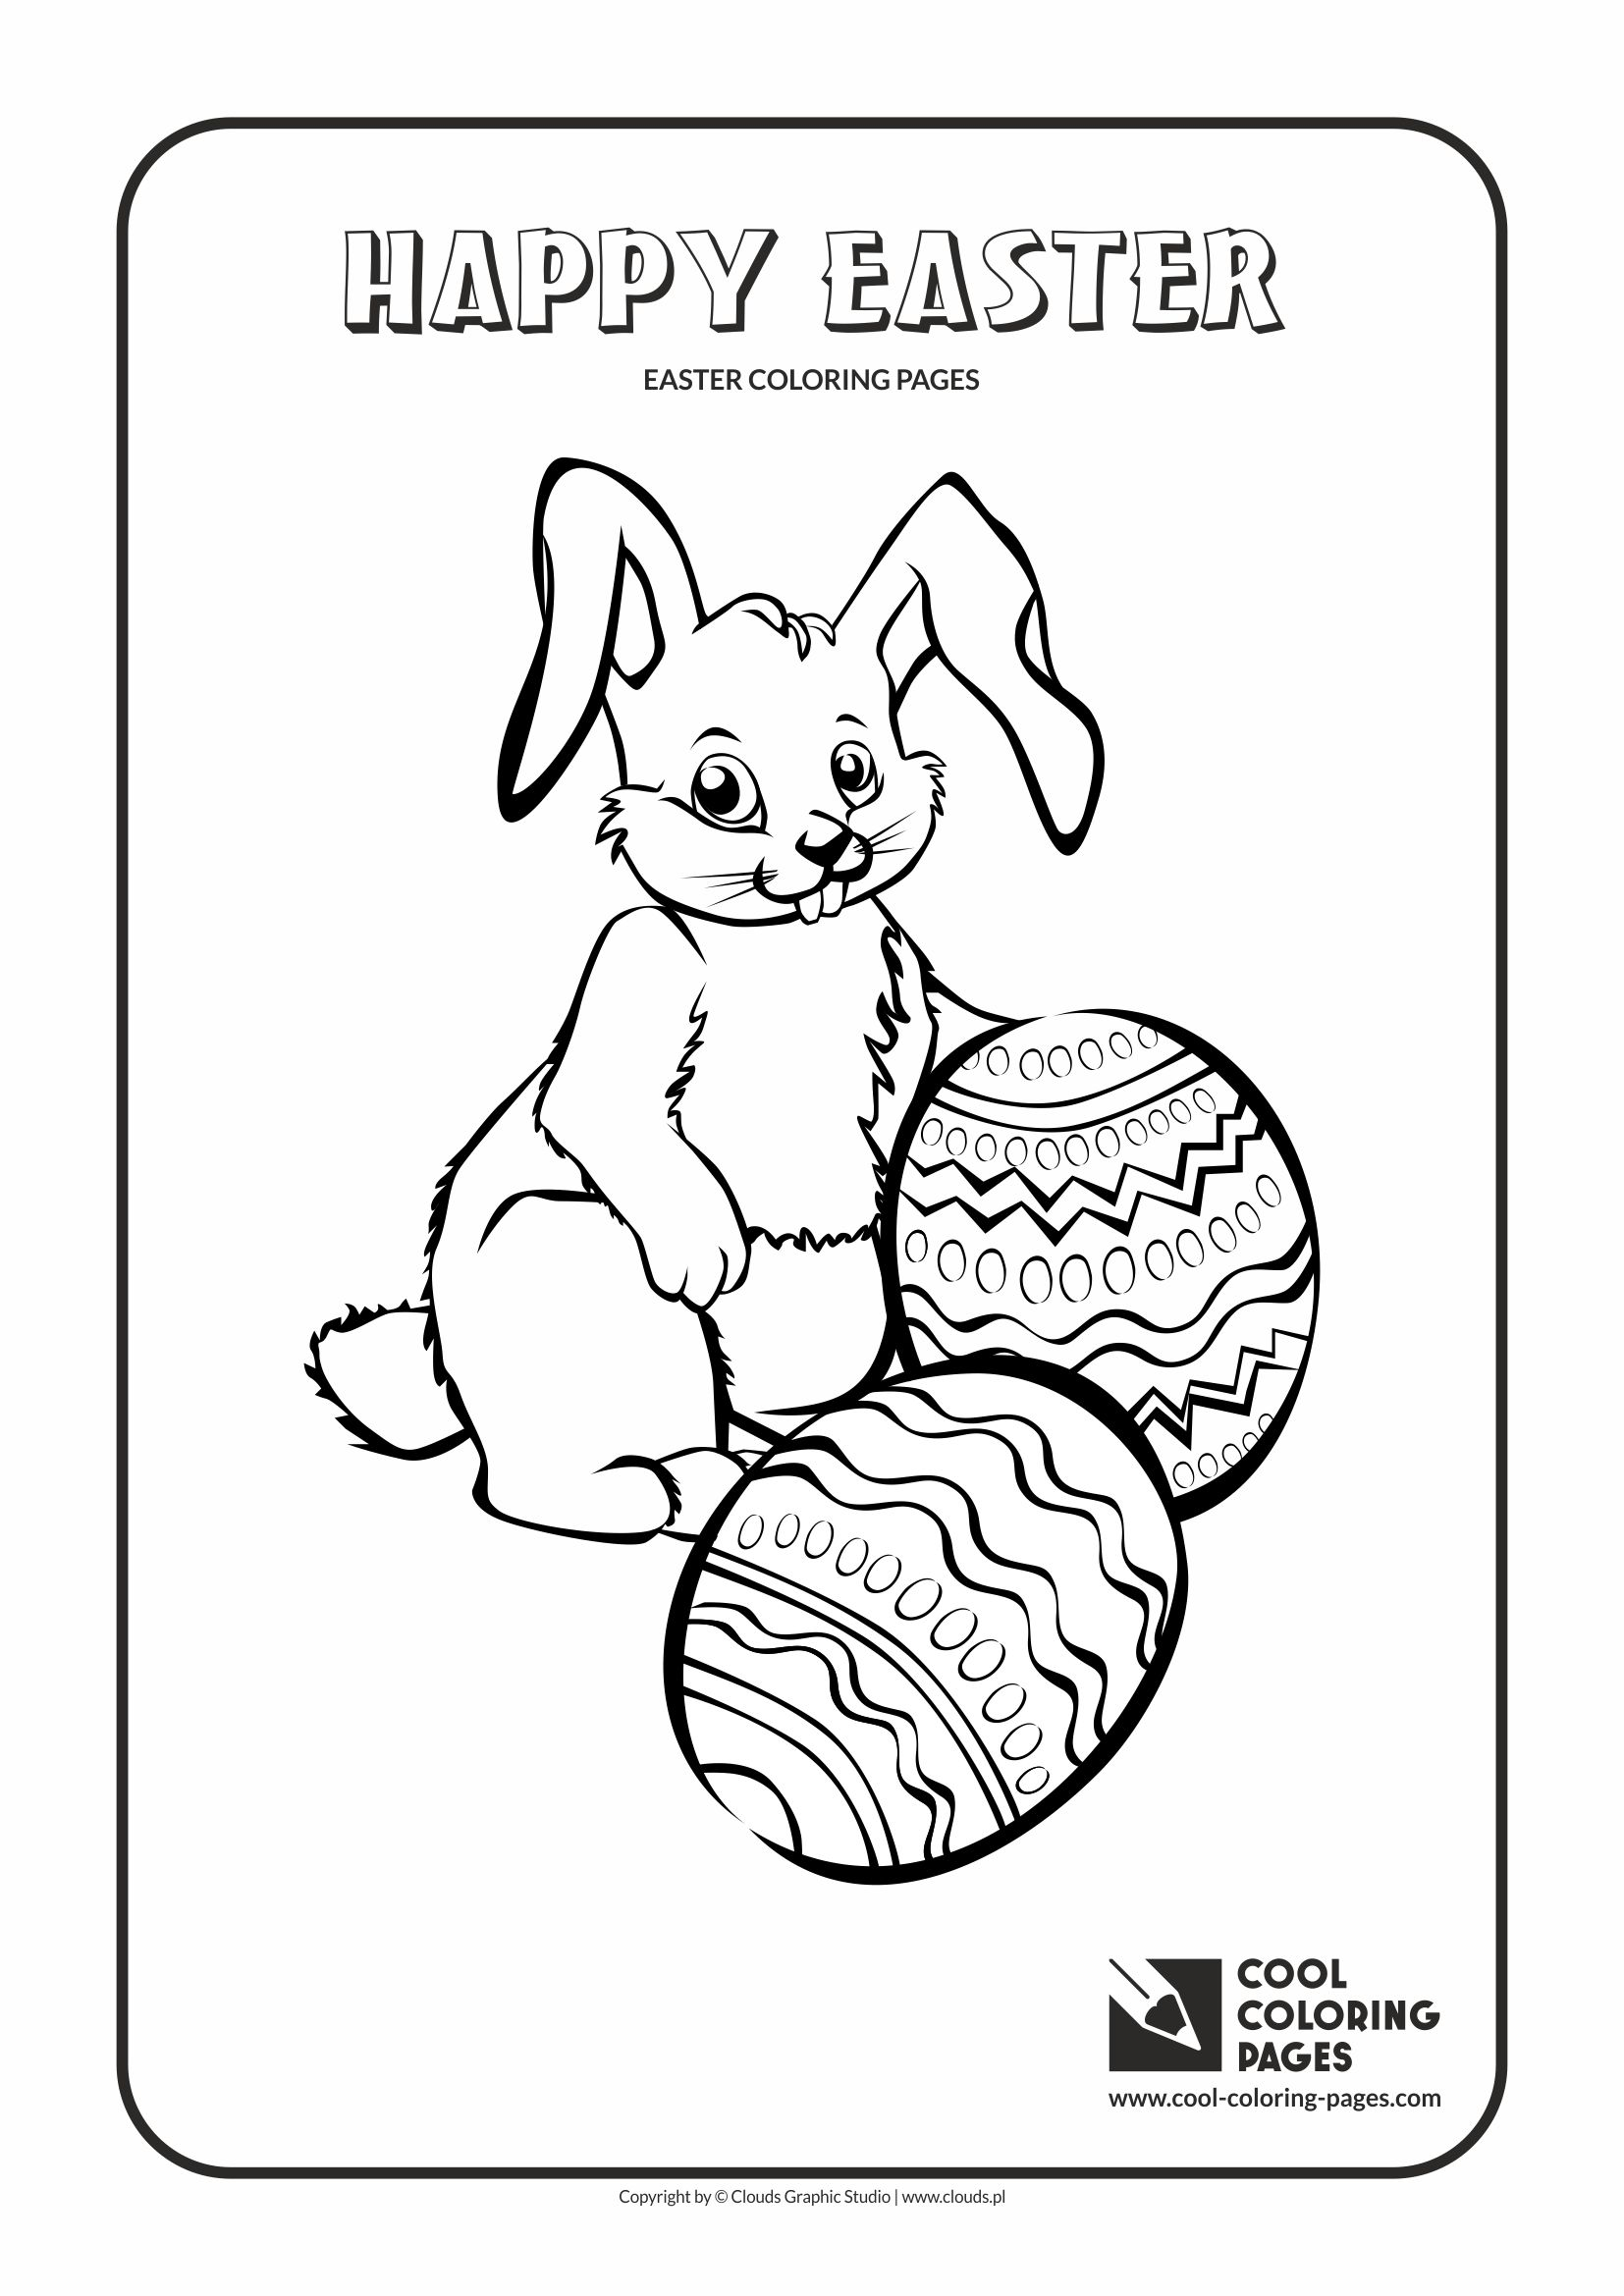 Cool Coloring Pages Easter bunny no 1 coloring page - Cool Coloring ...